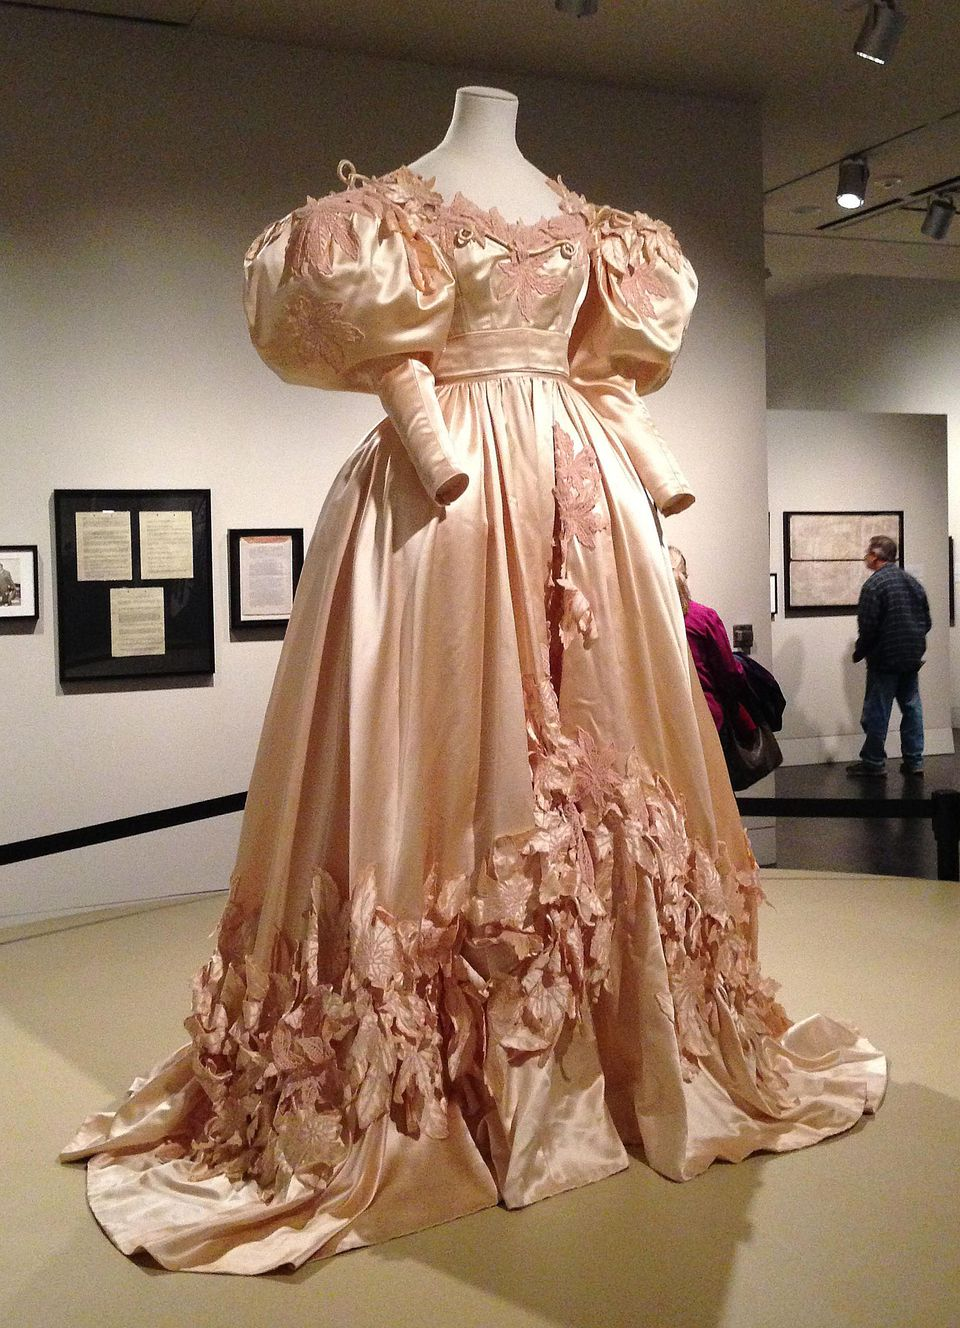 Scarlet o hara s dresses displayed after restoration for Restoring old wedding dresses